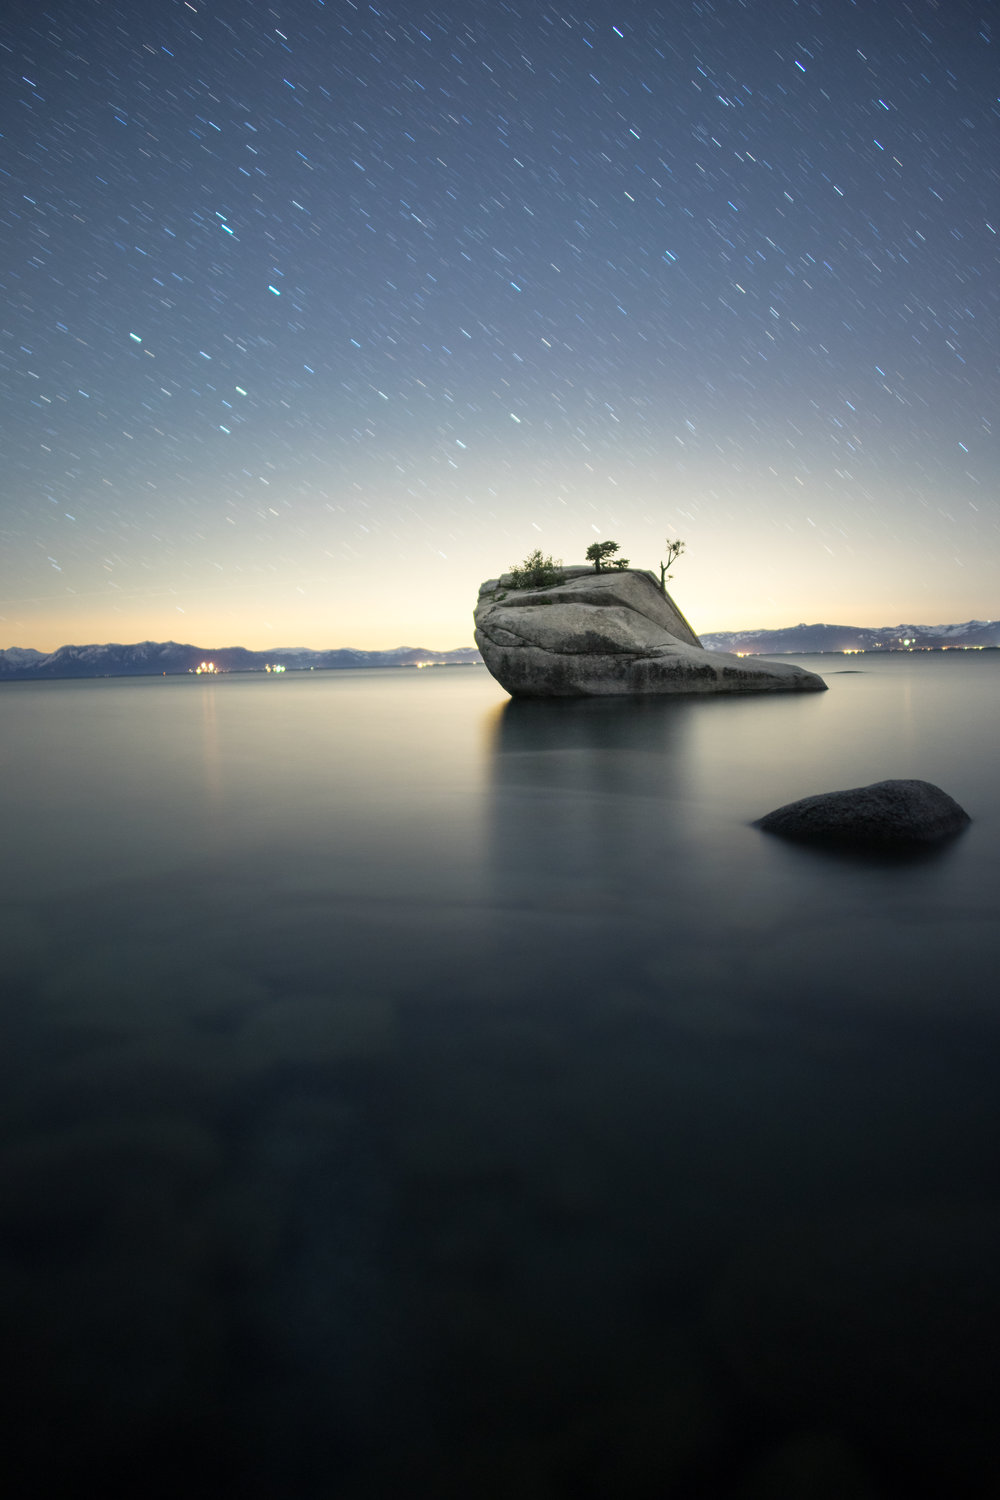 Bonsai Rock, Lake Tahoe [CA]